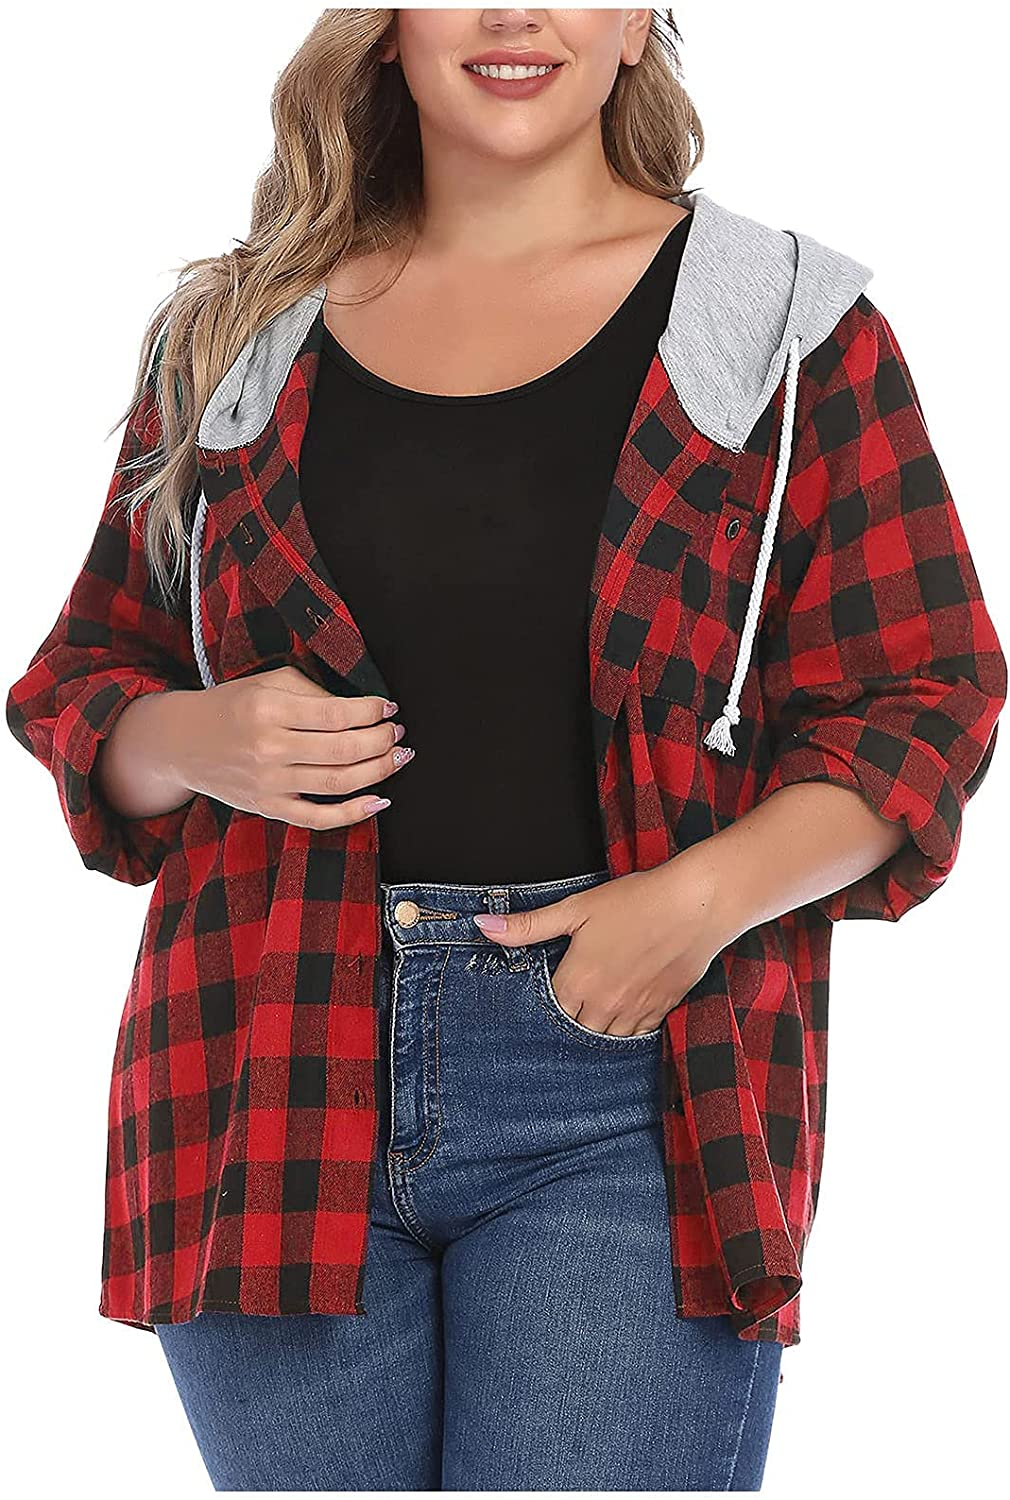 Women's Classic Plaid Hooded Jacket Plus Size Button Down Lightweight Coat Casual Hoodie Sweatshirts Pockets Coat